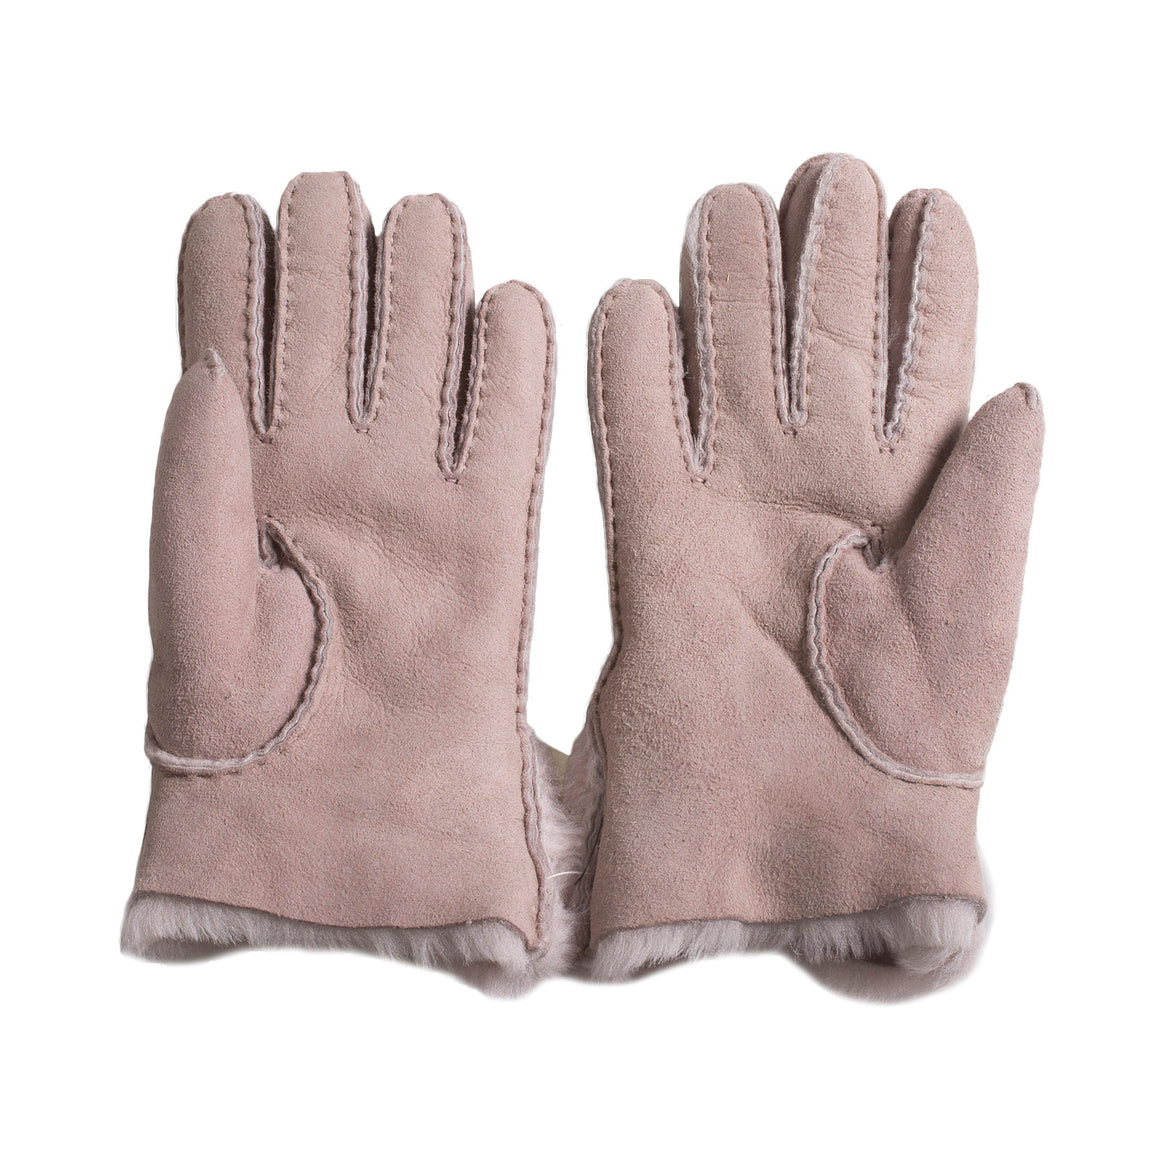 UGG Sheepskin Bow Dus Gloves - Women's